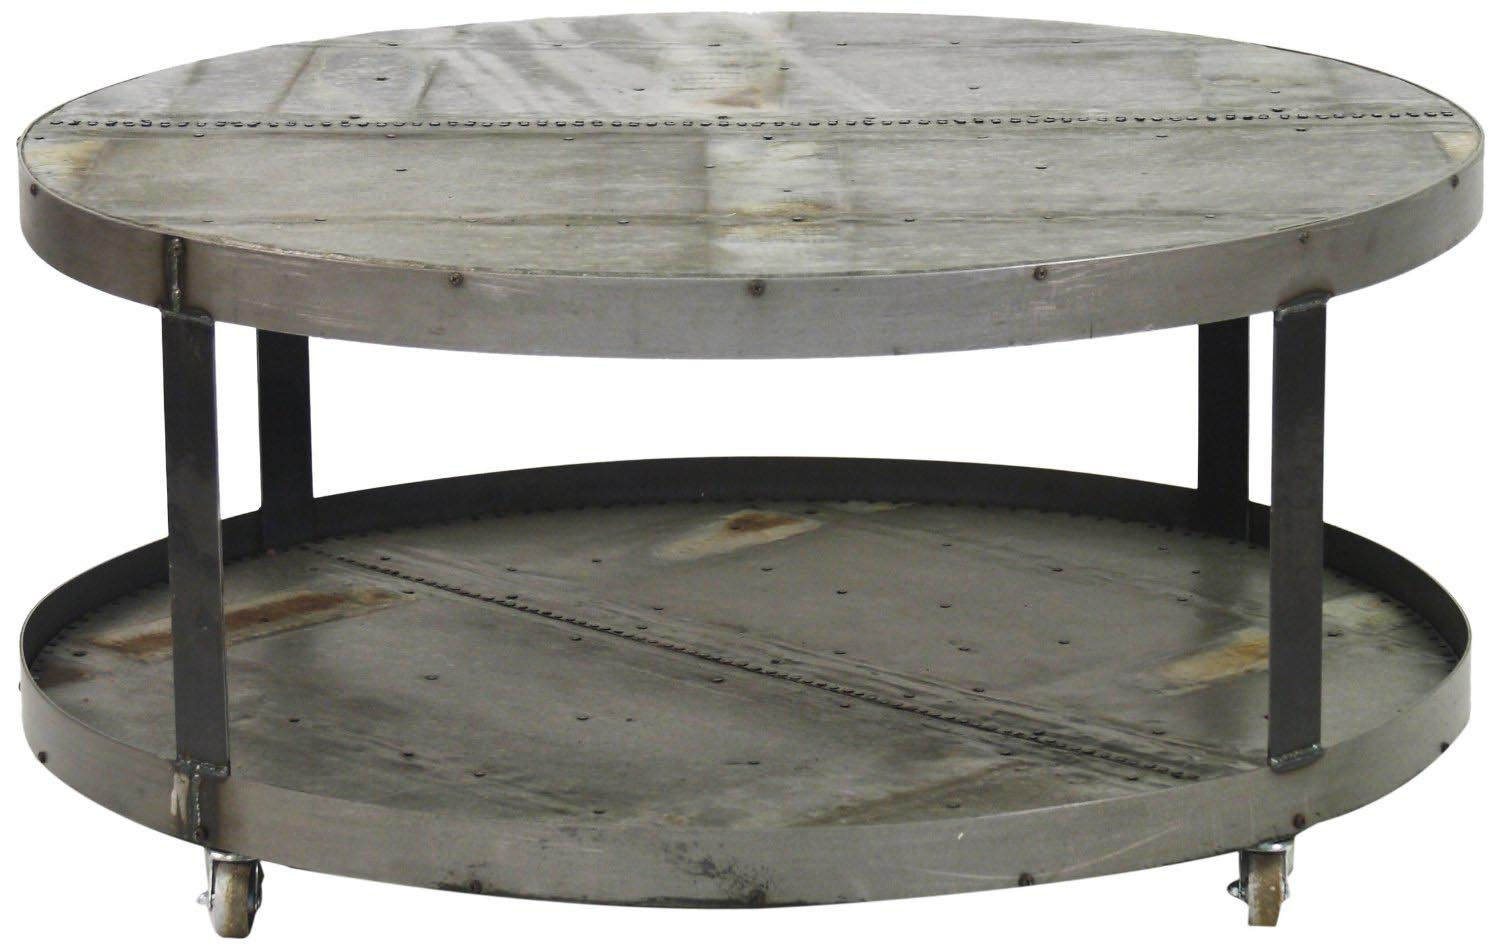 Oversized round coffee table coffee table design ideas What to put on a round coffee table